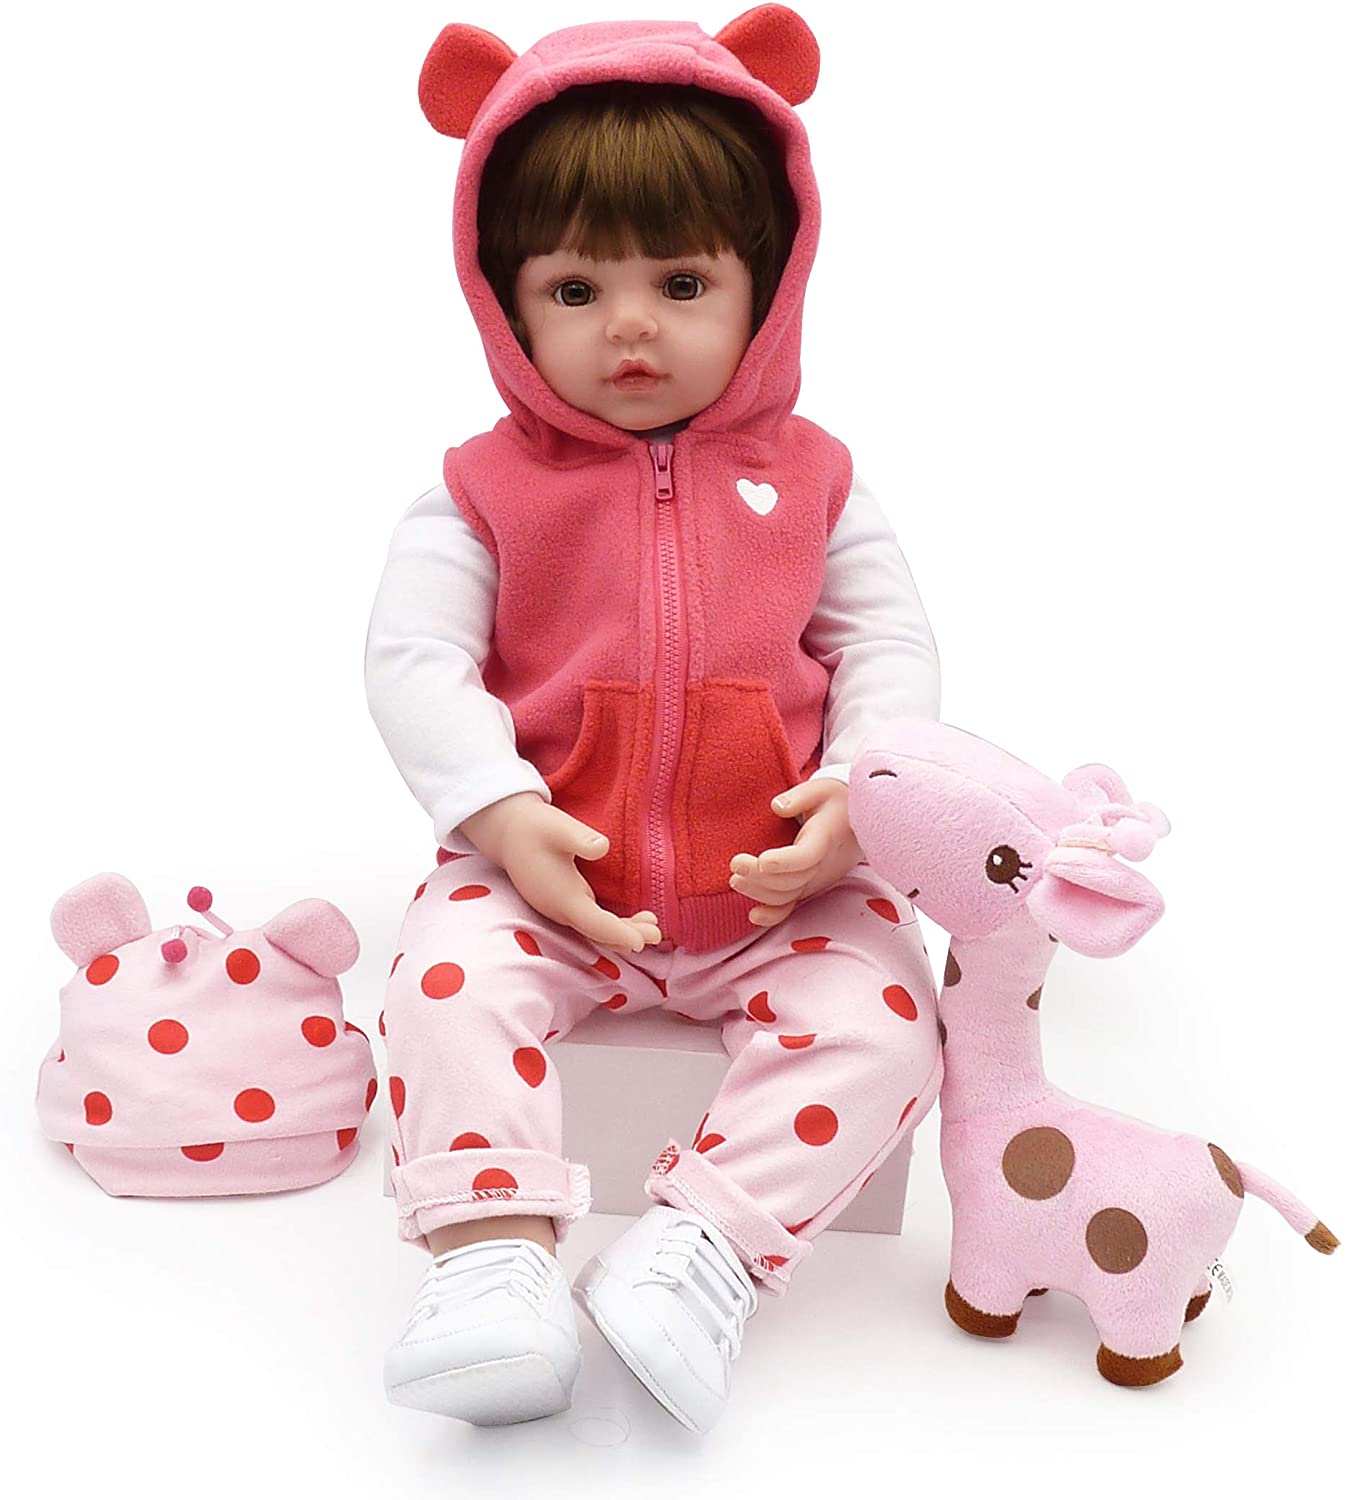 gifts-for-4-year-old-girls-realistic-babydoll